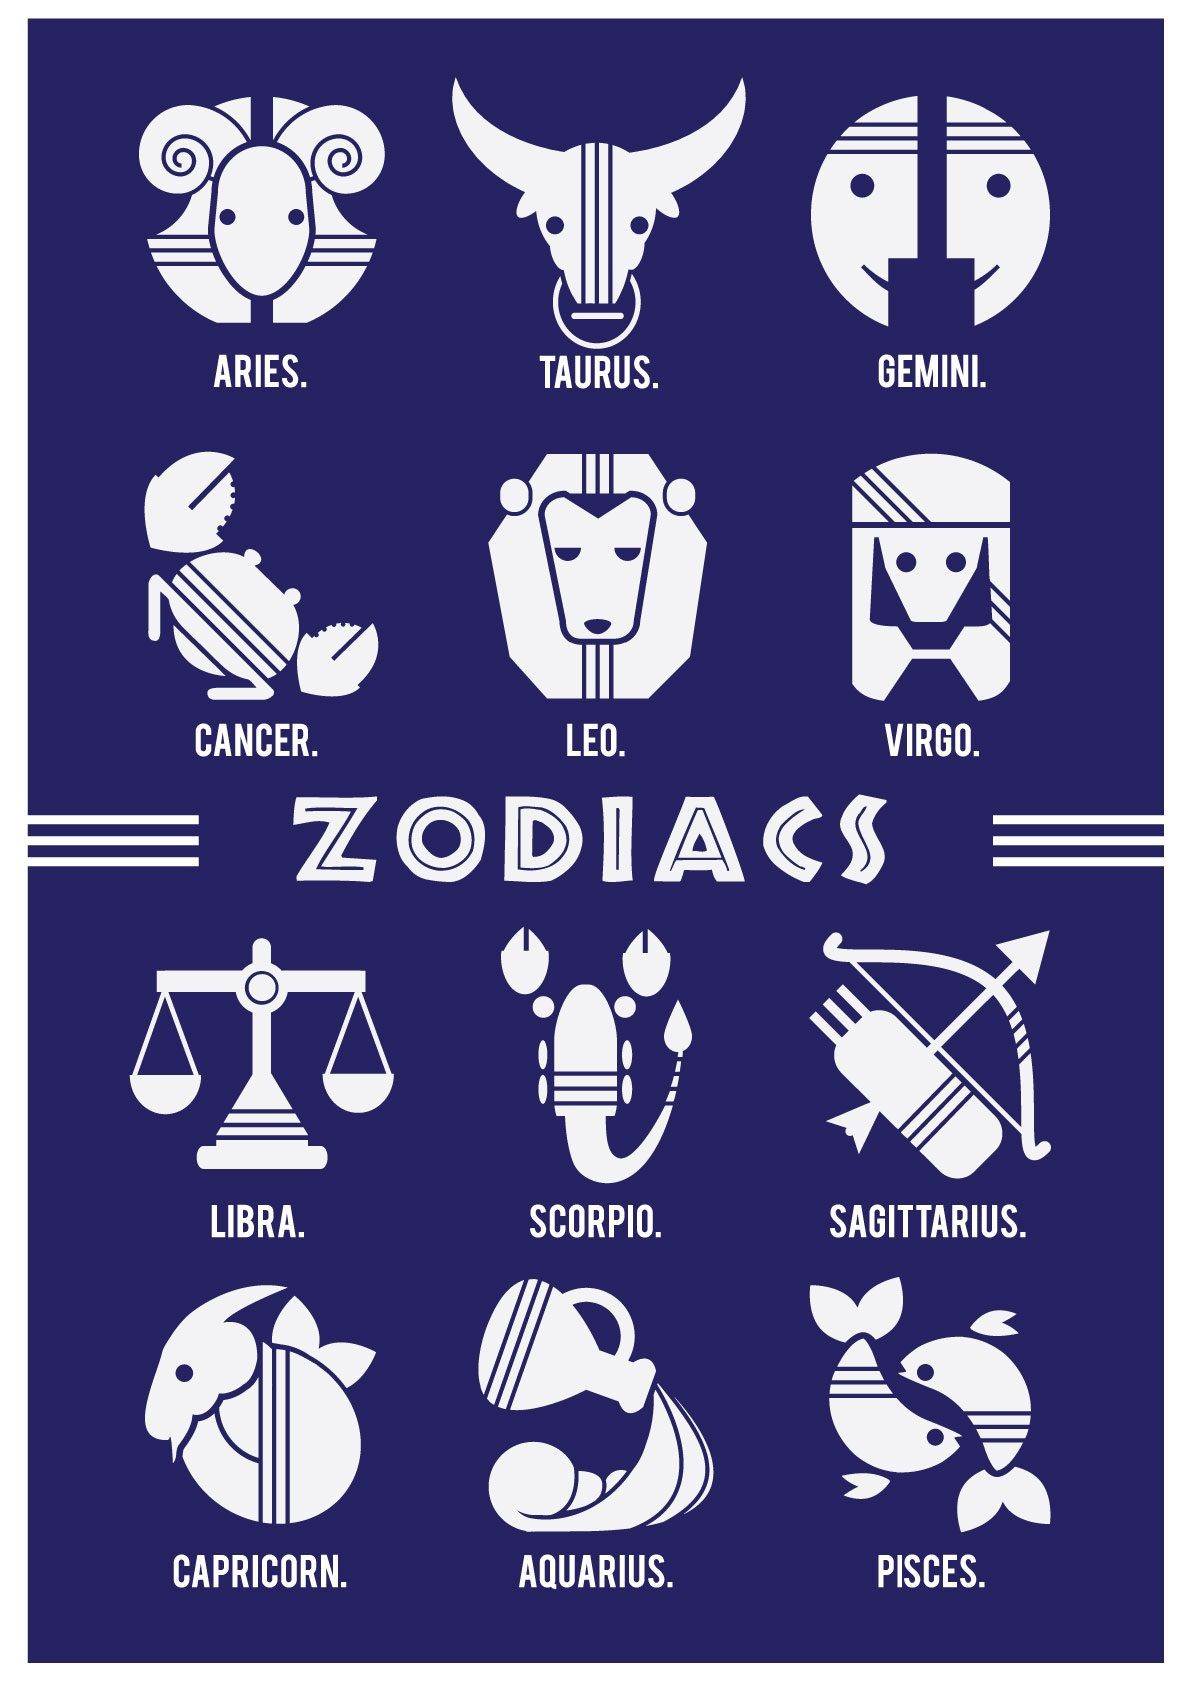 12 zodiac signs the magnificent zodiac pinterest 12 zodiac the 12 zodiac signs traits meanings symbols colors and more buycottarizona